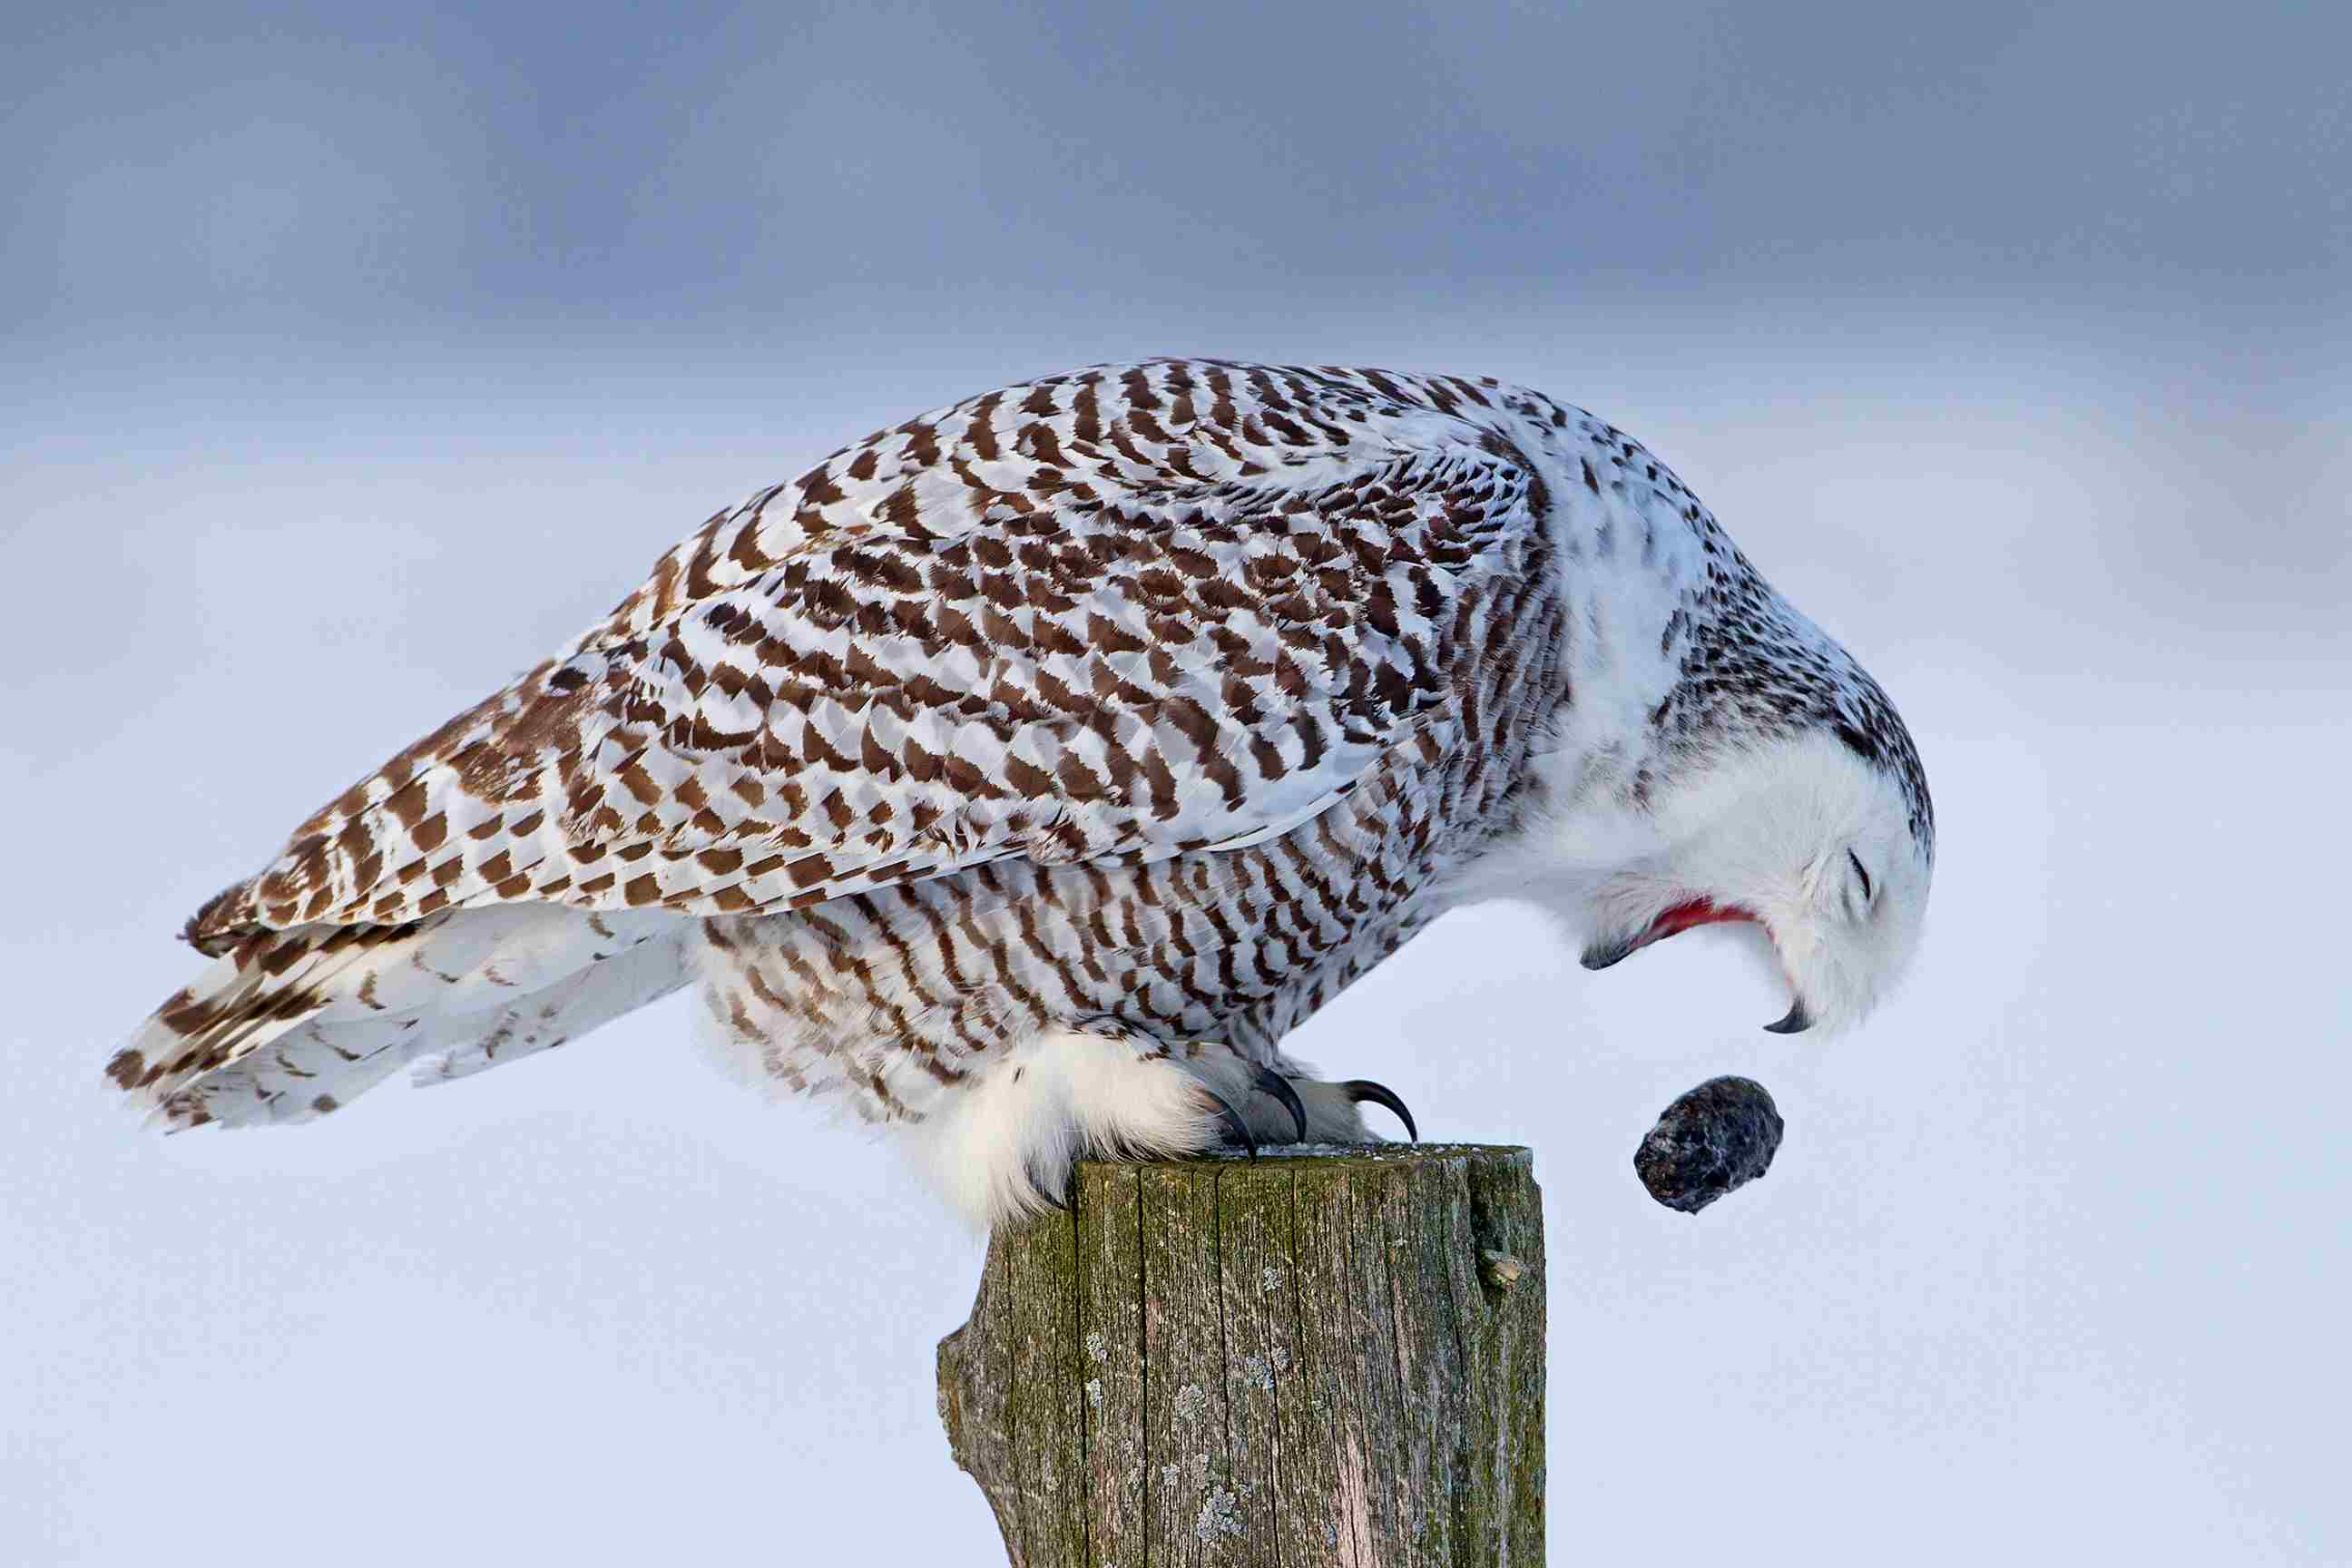 An owl dropping someing out of its mouth